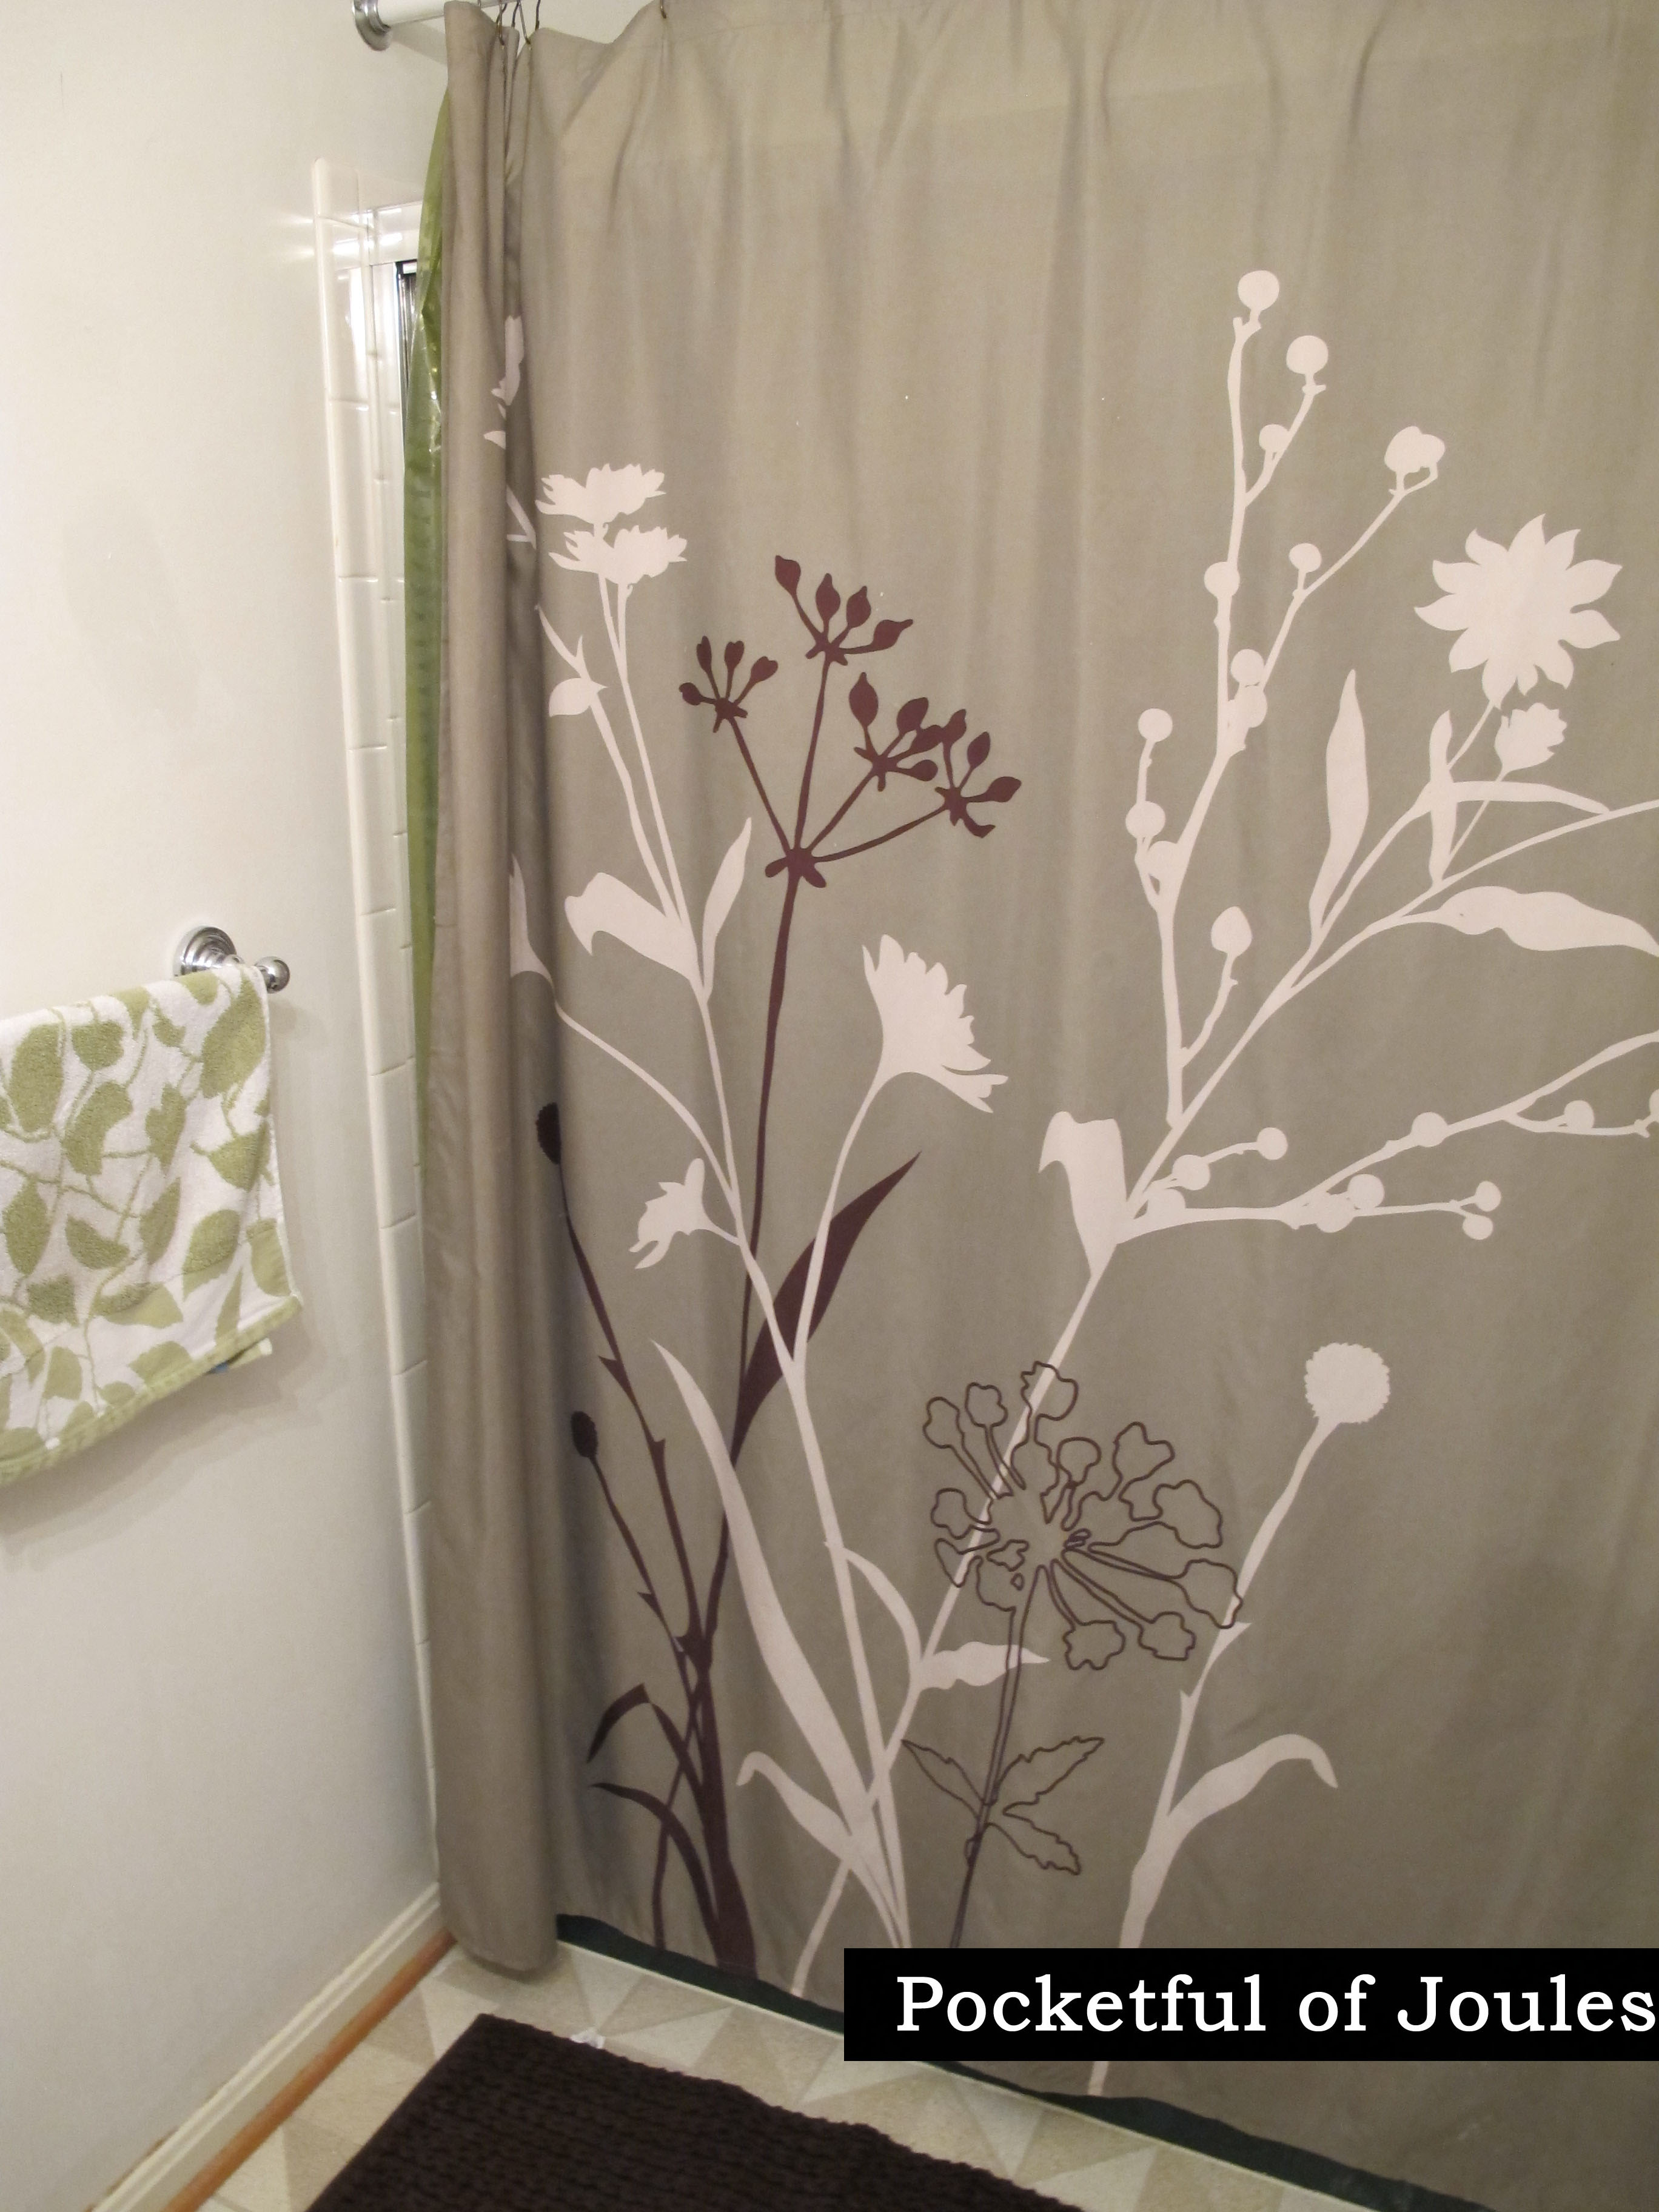 Matching Wallpaper And Shower Curtains Wallpapersafari